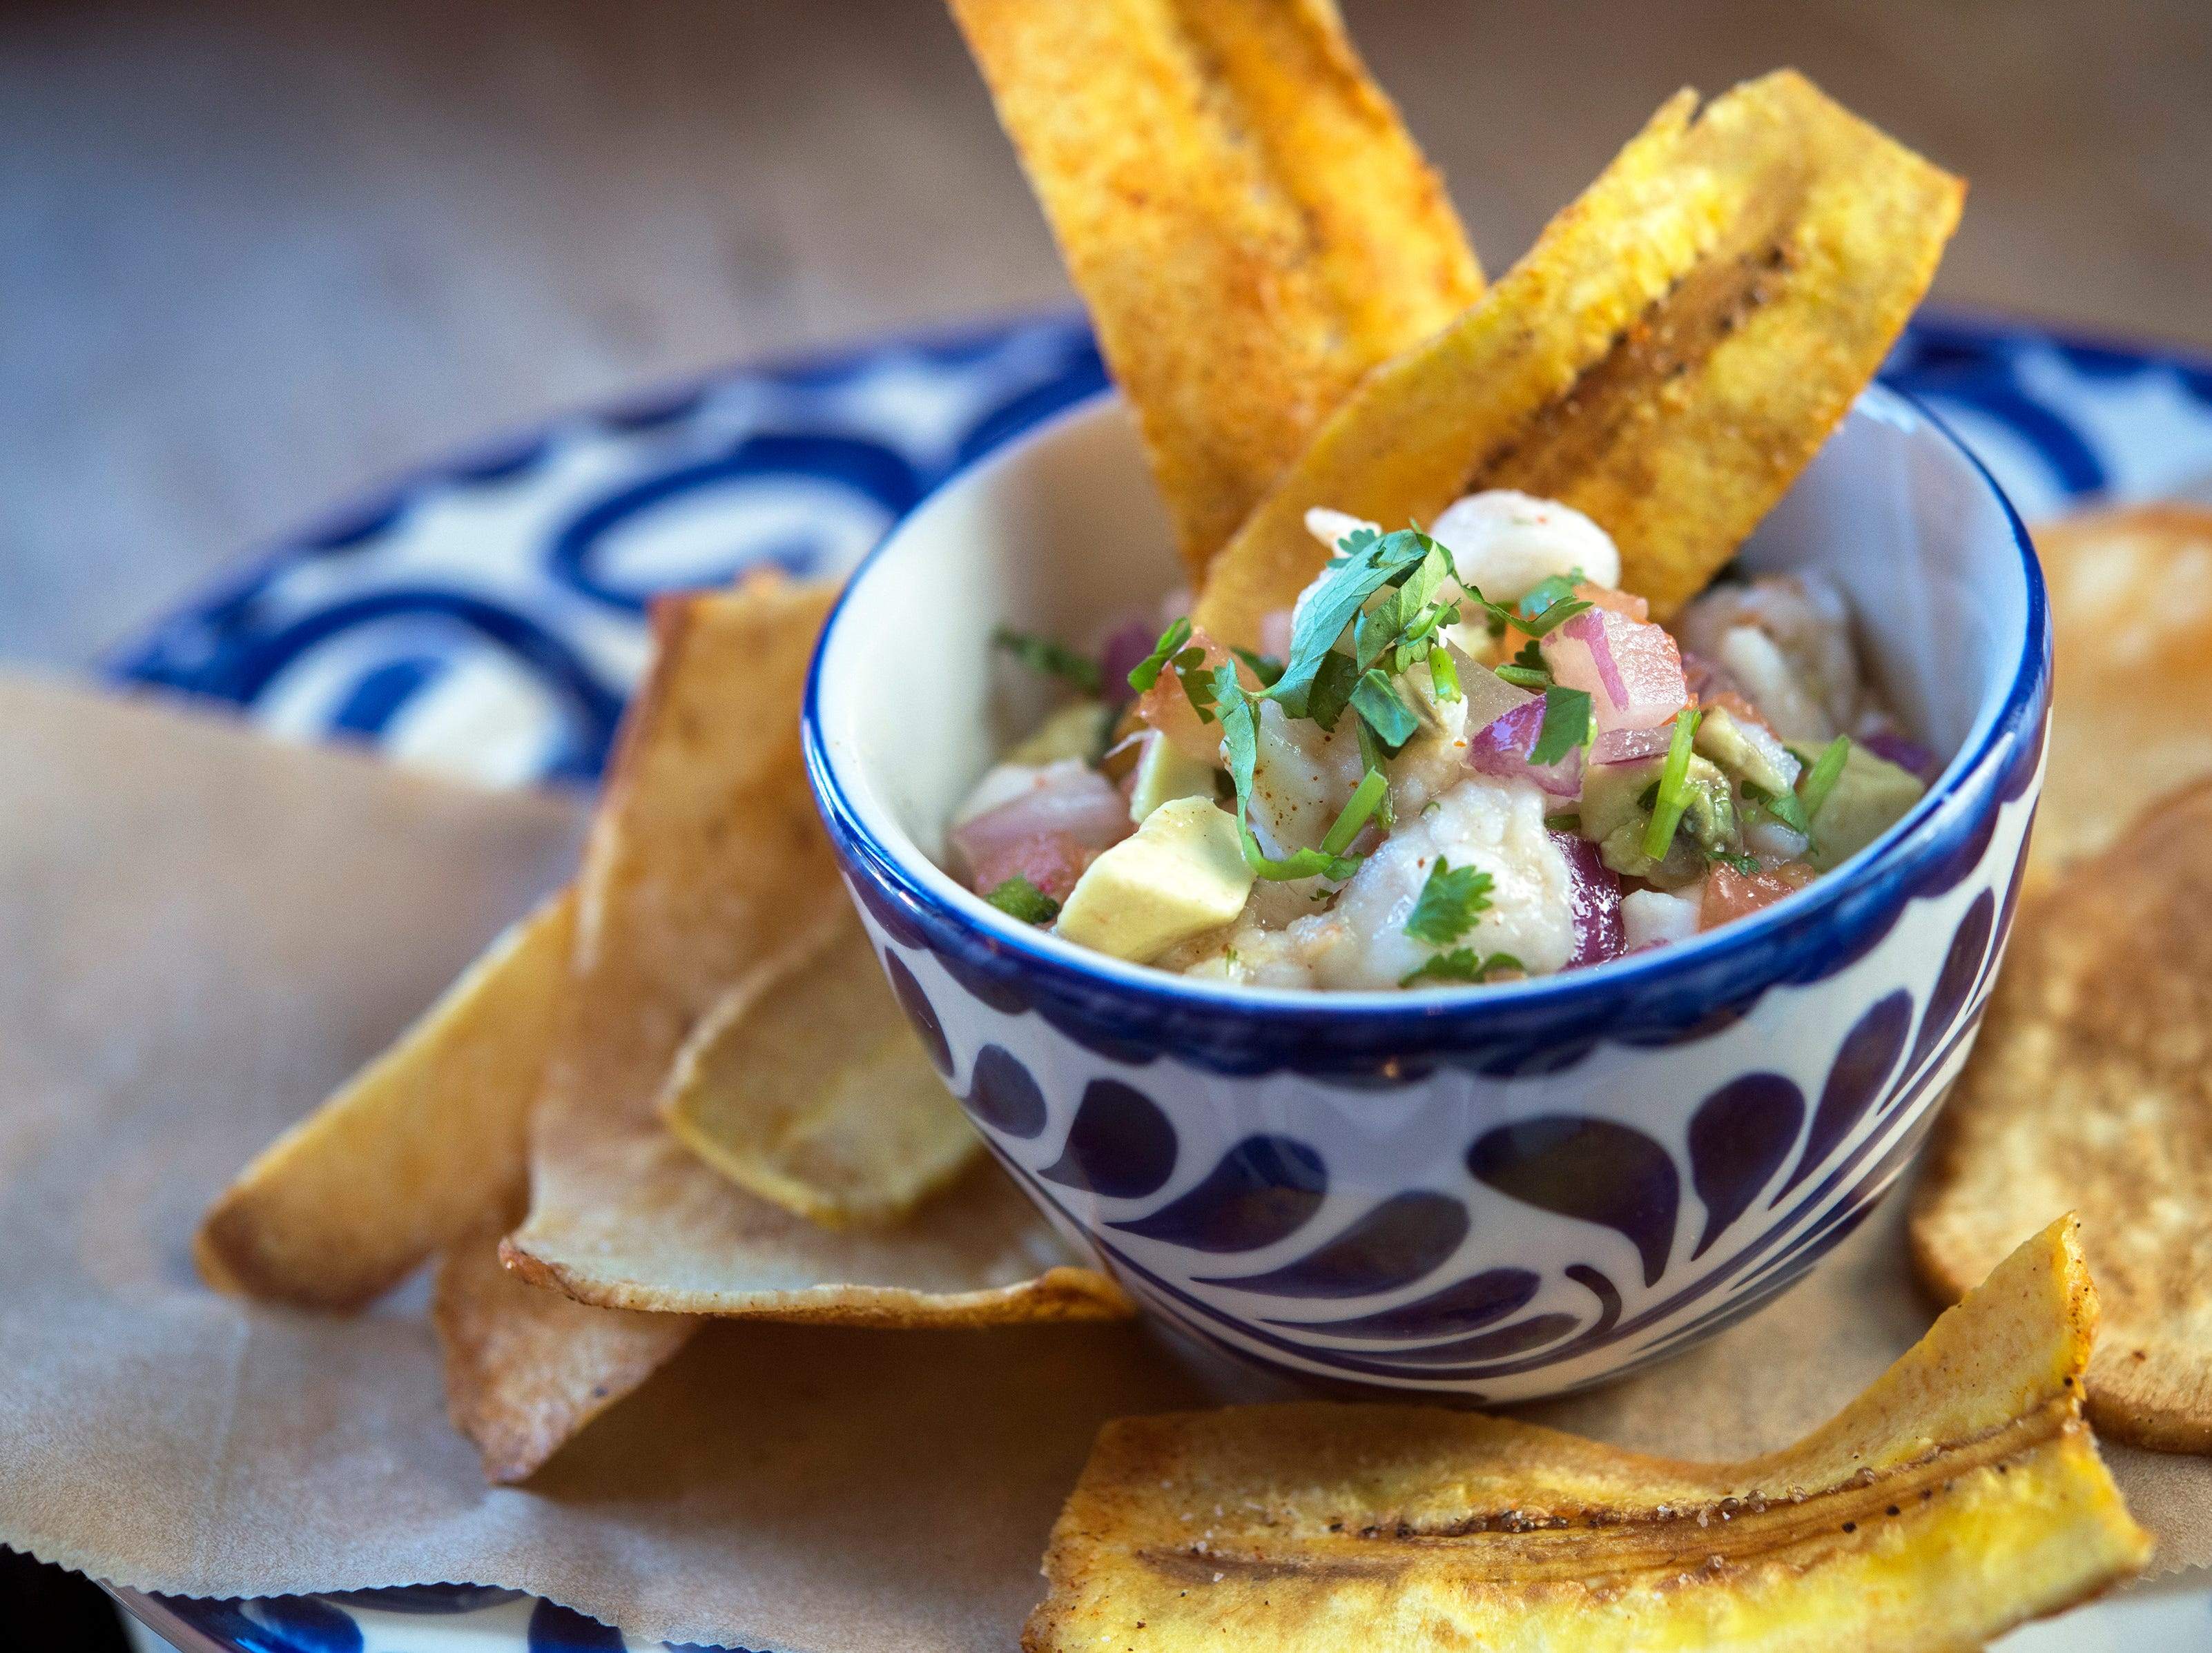 Ceviche at Rocco's Tacos & Tequila Bar features fresh marinated seafood with lime.